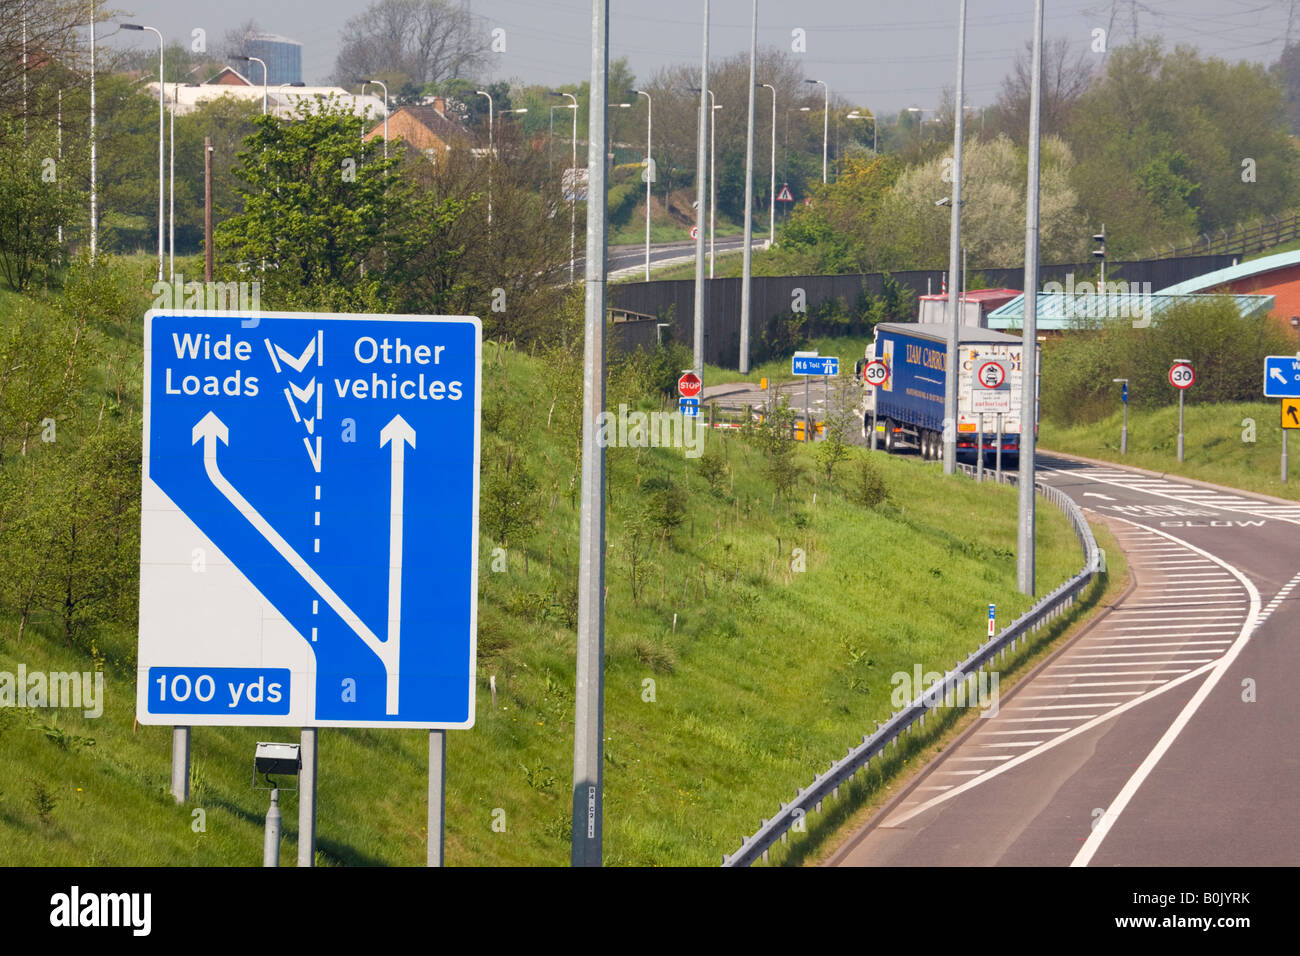 M6 TOLL MOTORWAY from above with sign and lorry in wide load lane.  West Midlands England UK - Stock Image